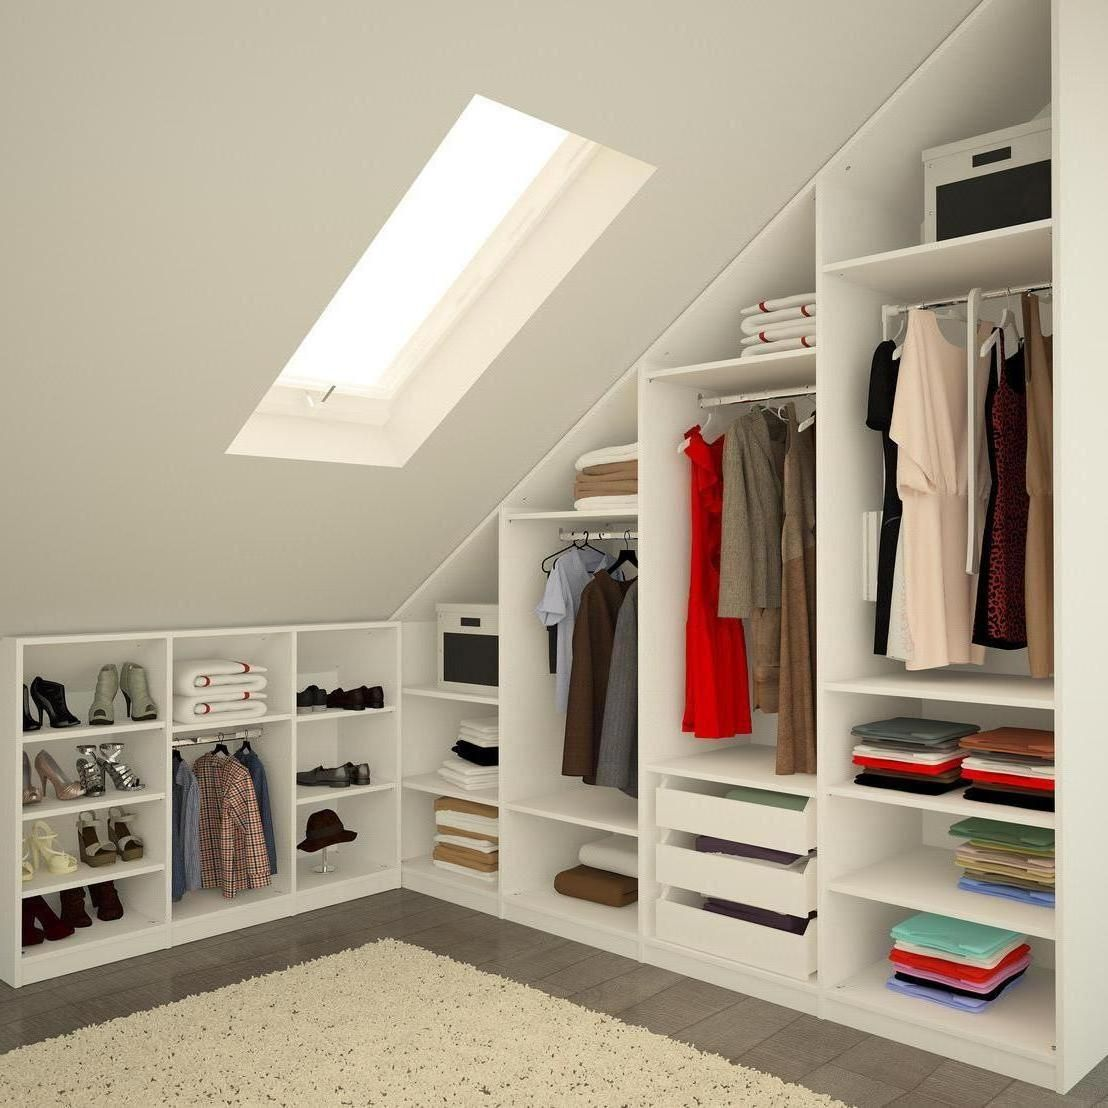 Bedroom Closet Design Images Atrractive White Dressing Rooms In Attic Bedroom Design As Well